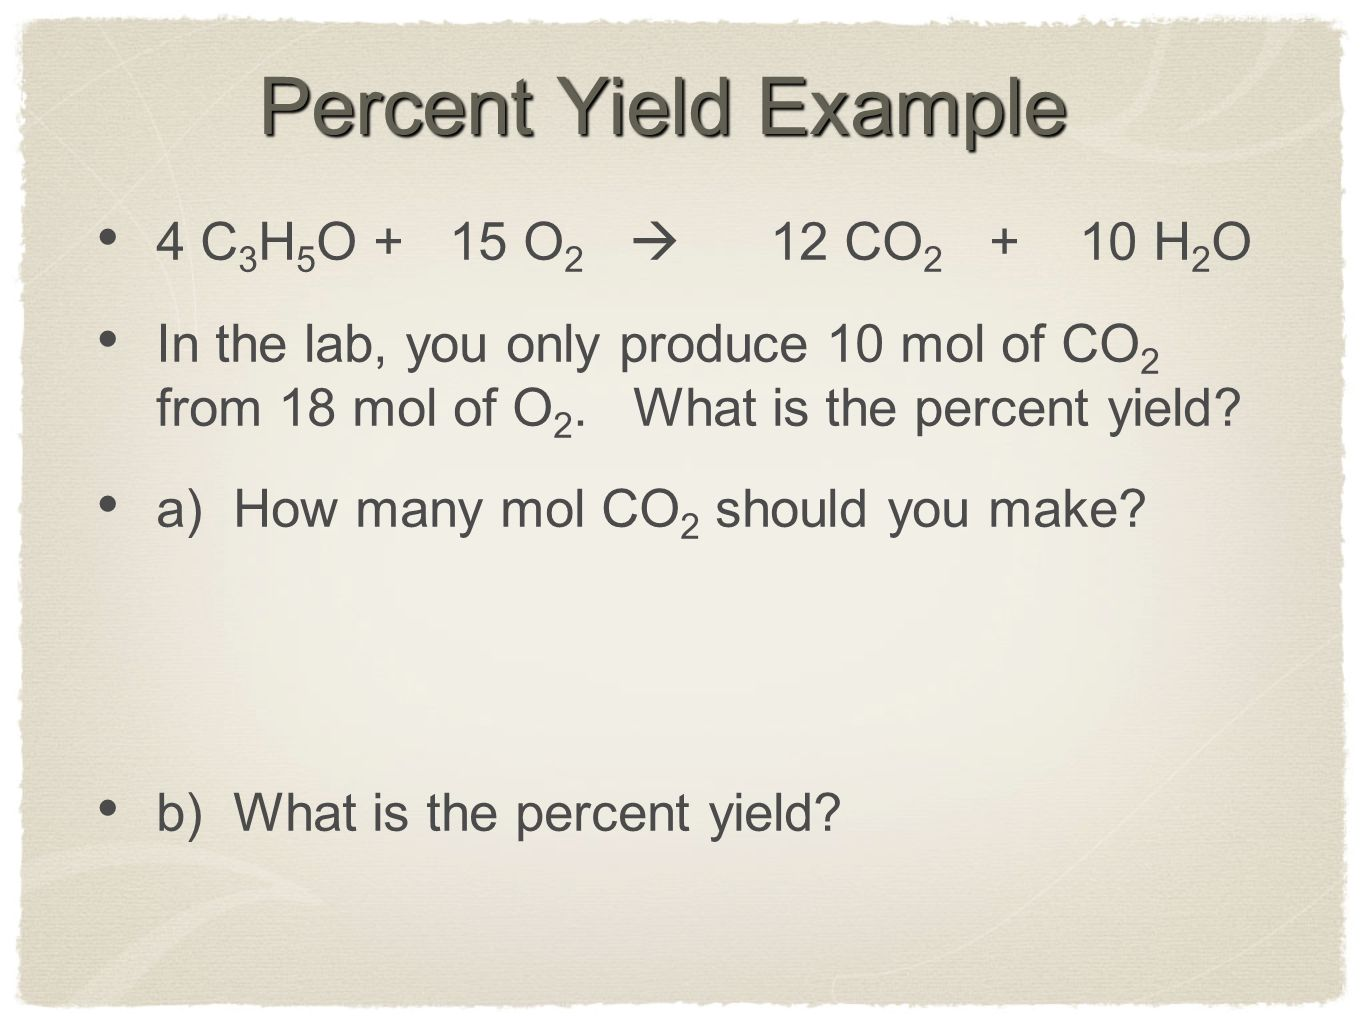 Percent Yield Example 4 C 3 H 5 O + 15 O 2  12 CO 2 + 10 H 2 O In the lab, you only produce 10 mol of CO 2 from 18 mol of O 2.